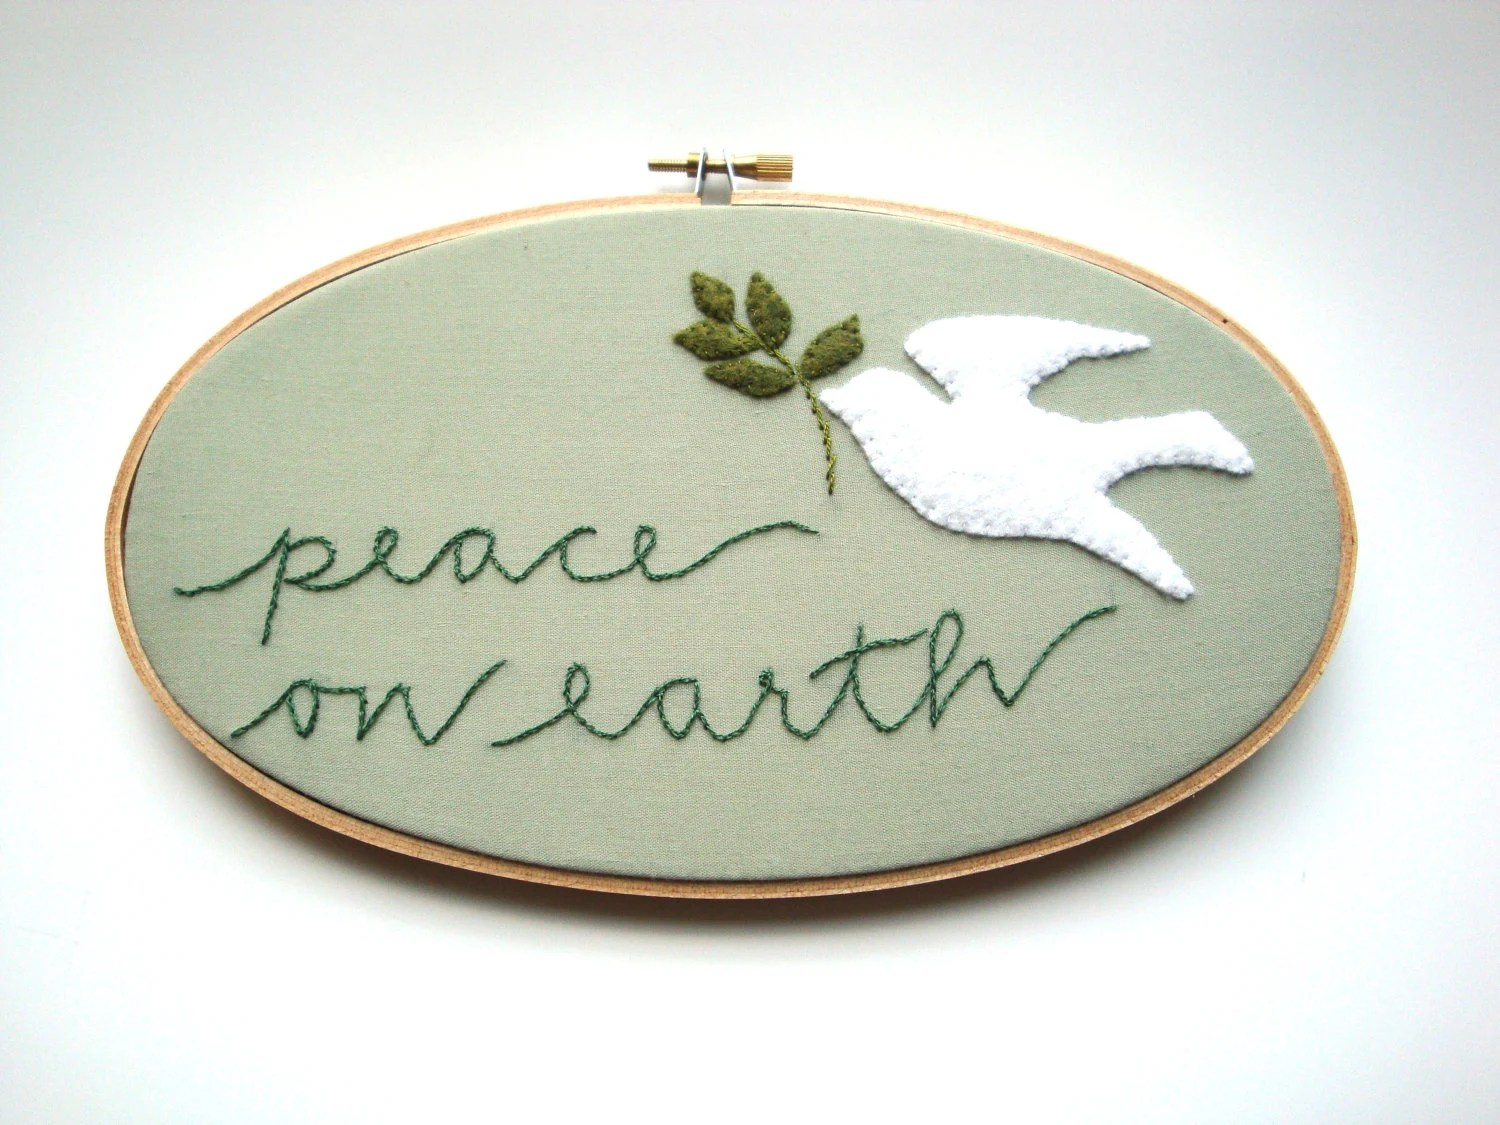 Hand embroidery hoop decor peace on earth Christmas holiday new year art - jenniferallevato